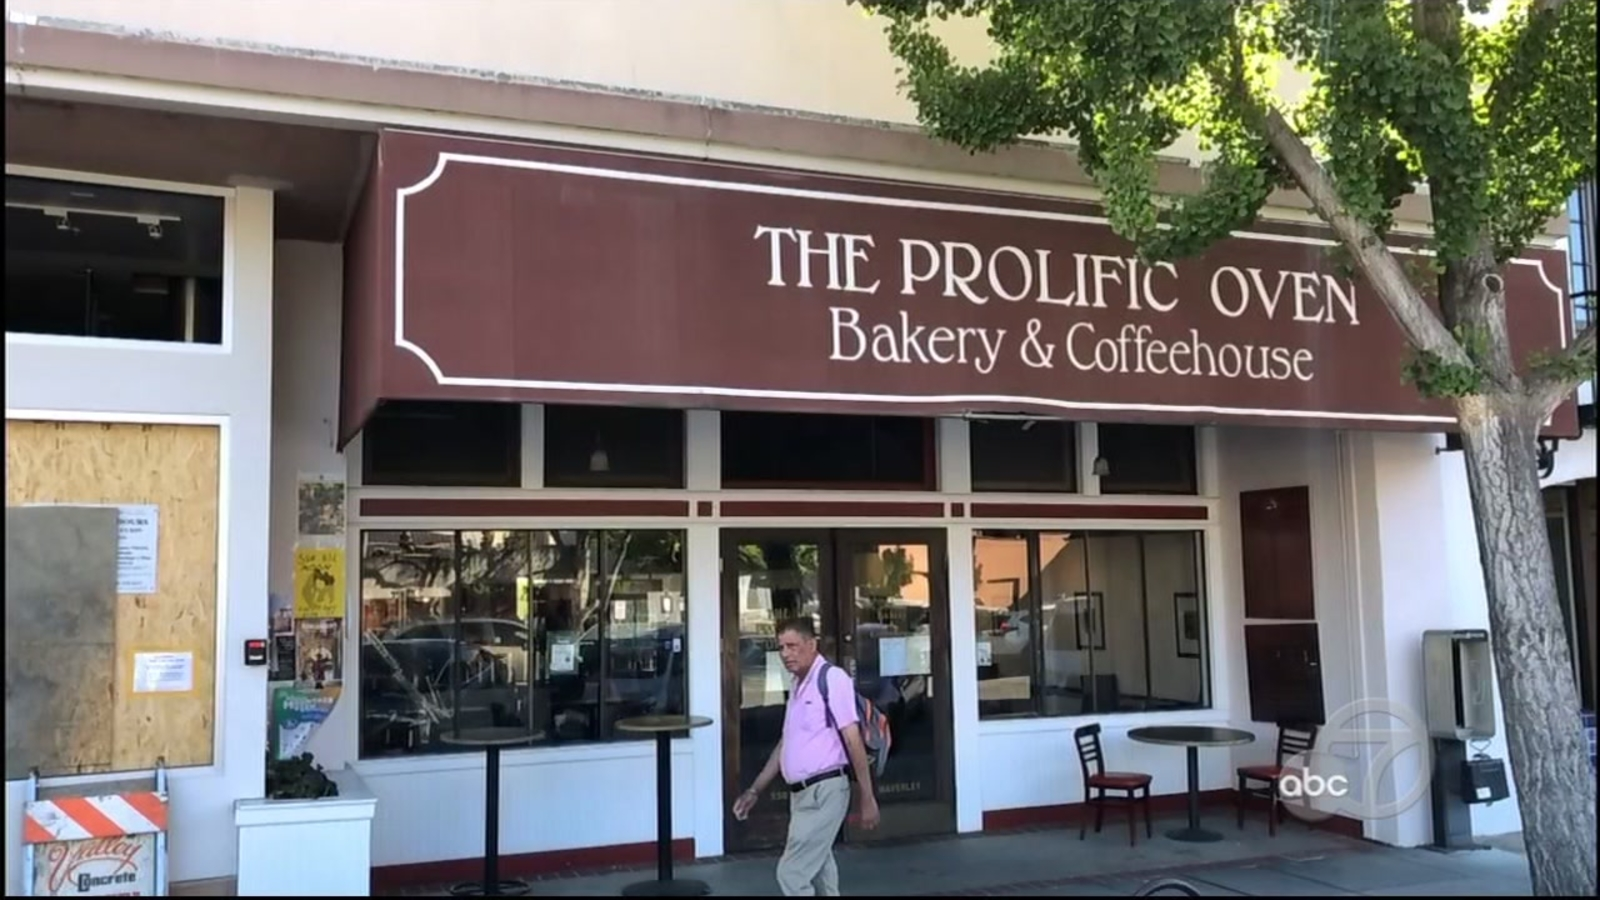 Bay Area's Prolific Oven closing all locations by end of August after 39 years in business